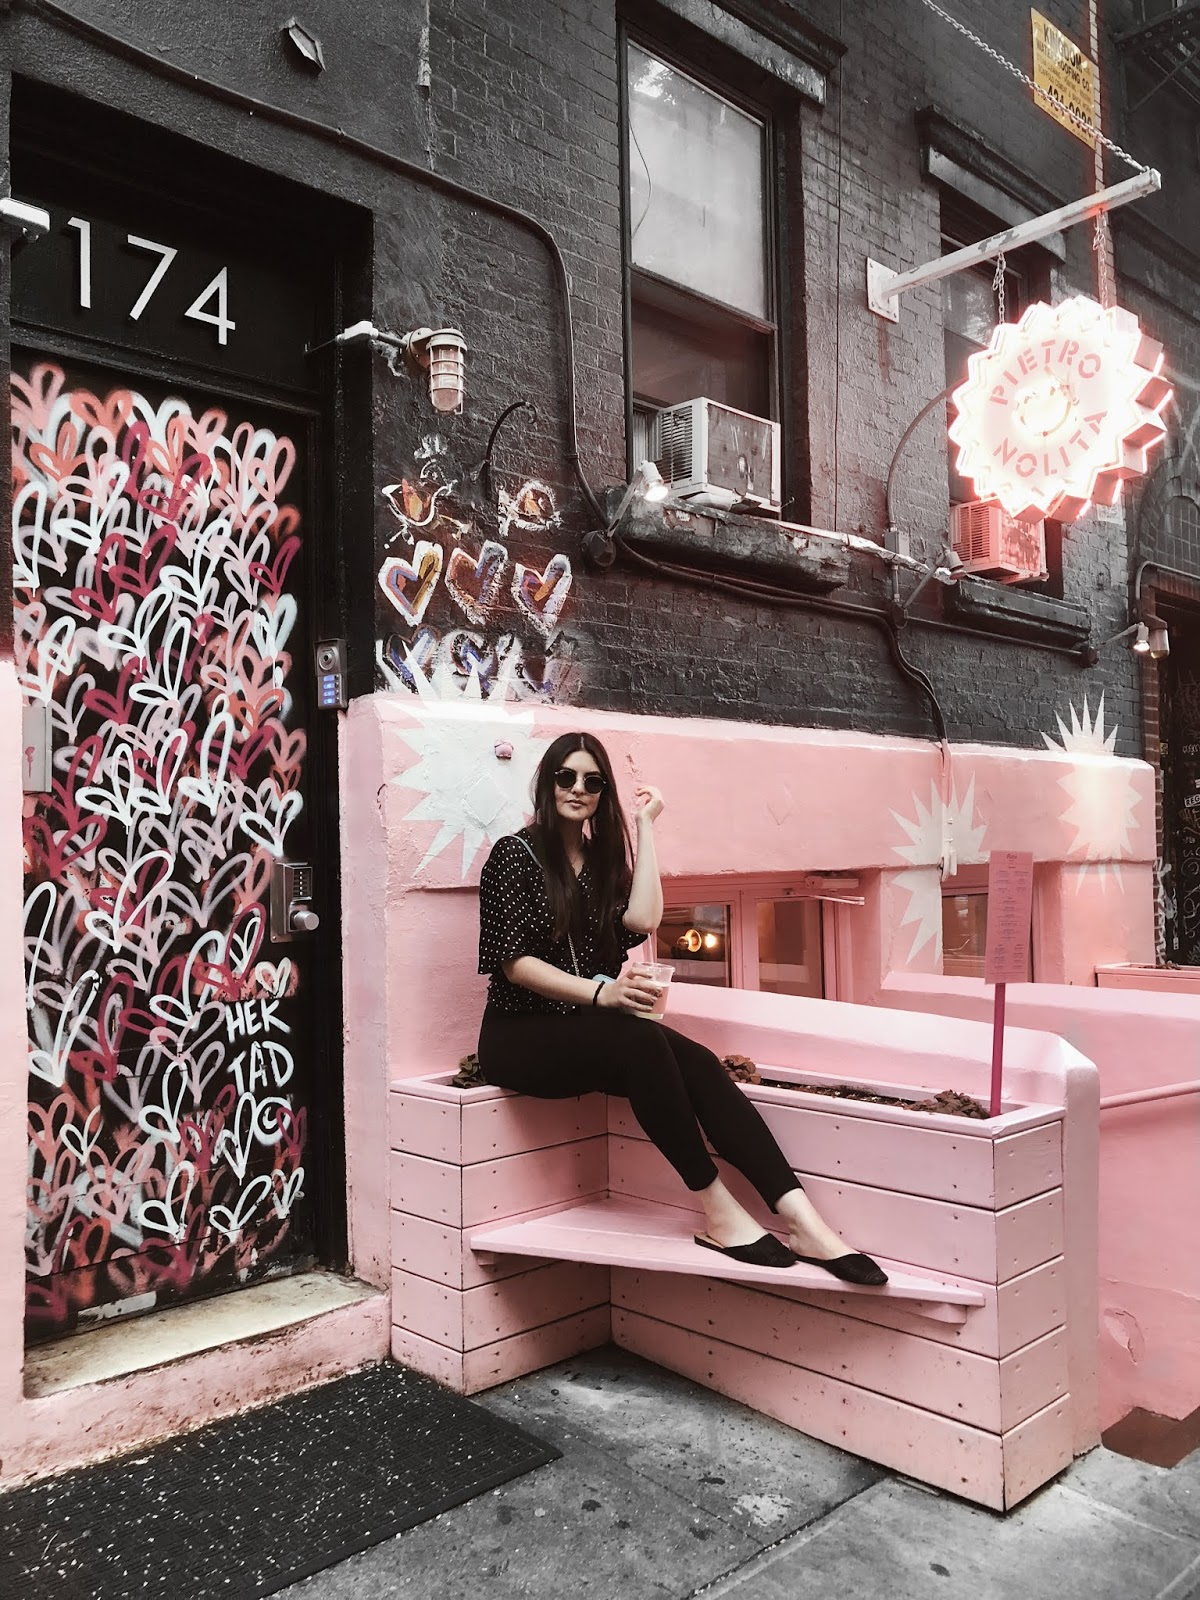 new york instagram places guide food spots instagrammable worthy pink italian pietro nolita coffee cafe dr smood tacombi cupcake bakeshop little italy manhattan tour gregorys chacha matcha 2